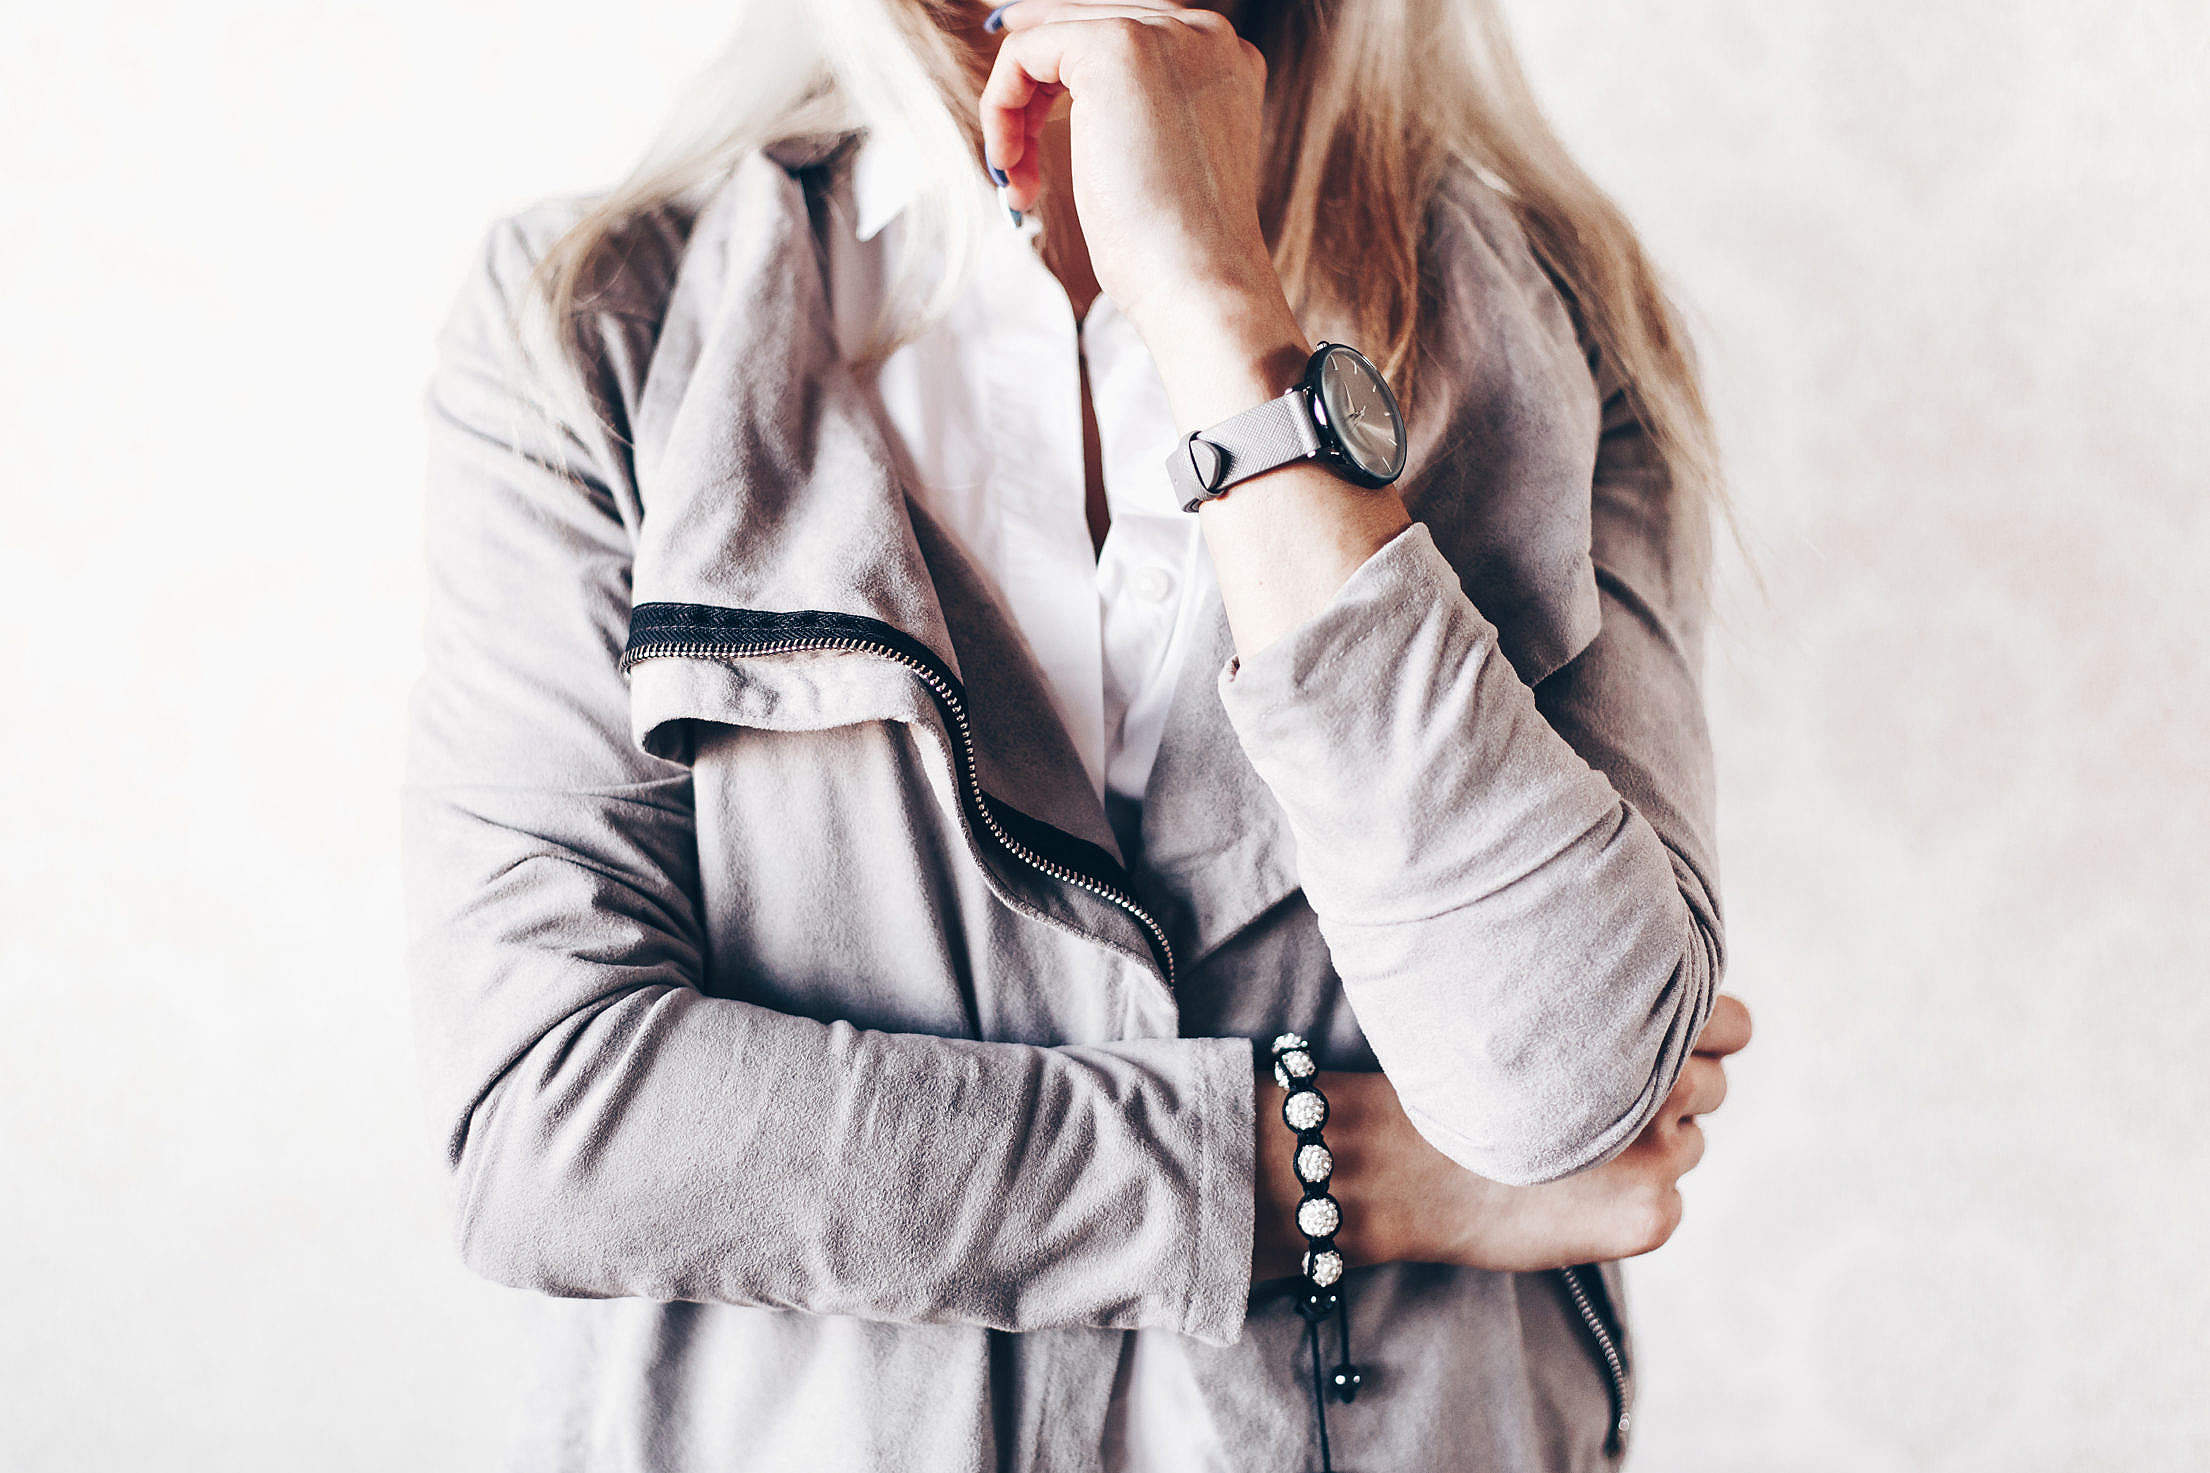 Girl Fashion Pose with Gray Watches and Suede Jacket #2 Free Stock Photo